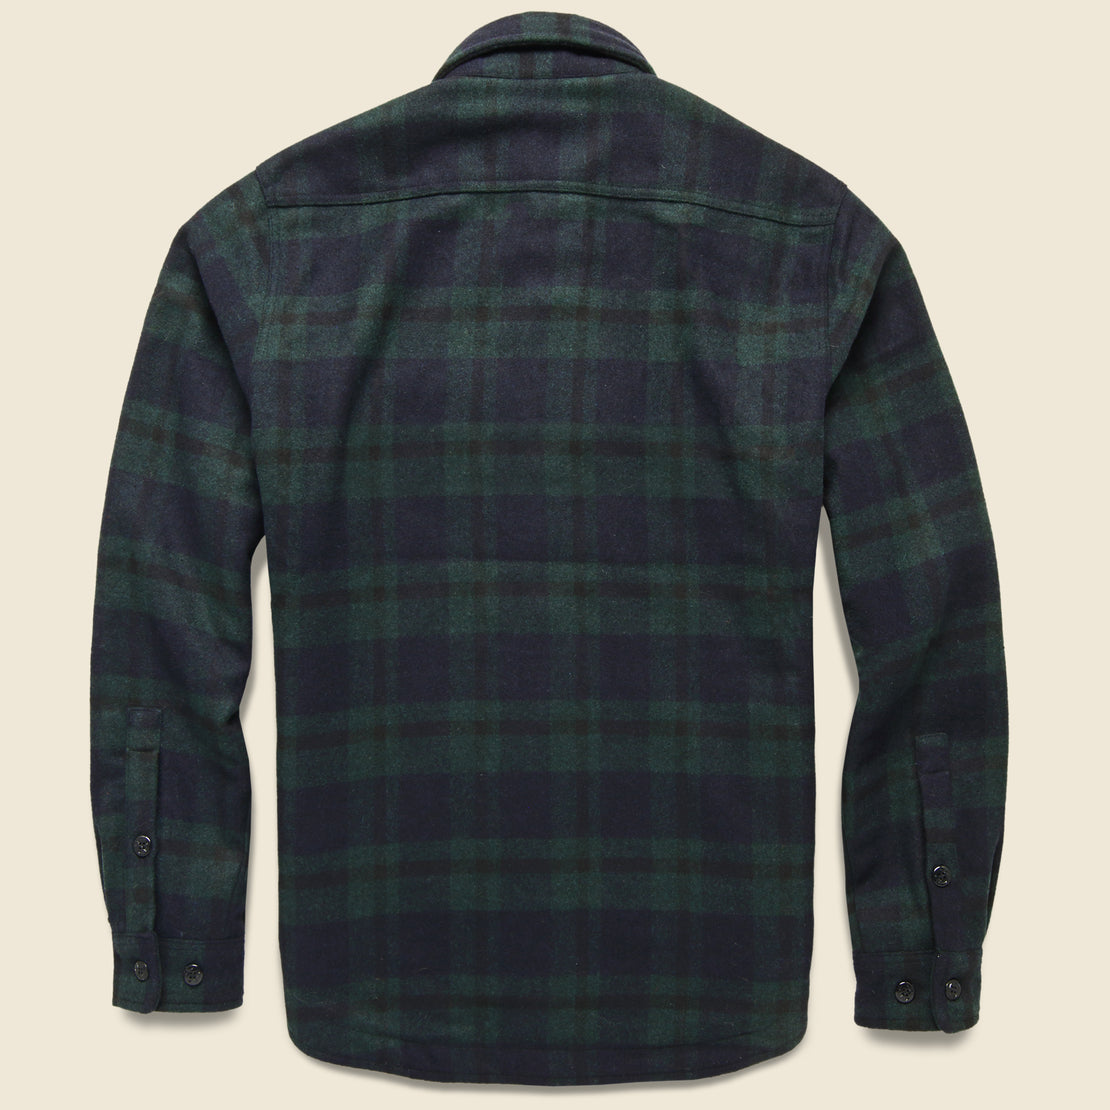 Quilt Lined CPO Shirt Jacket - Hunter Green Plaid